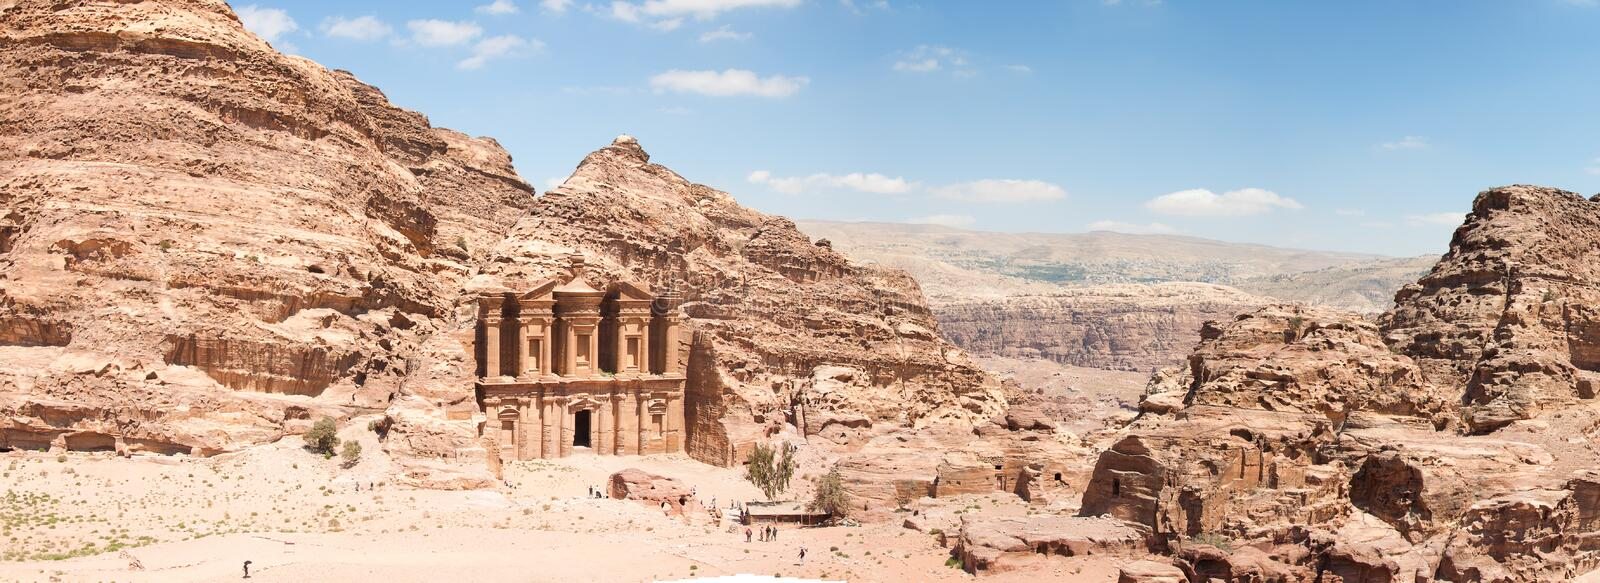 The Monastarty, Petra, Jordan. The Monastery (Ad Deir), an example of Nabatean classical style, Petra, Jordan. Panormaic view with surronding cliffs royalty free stock image